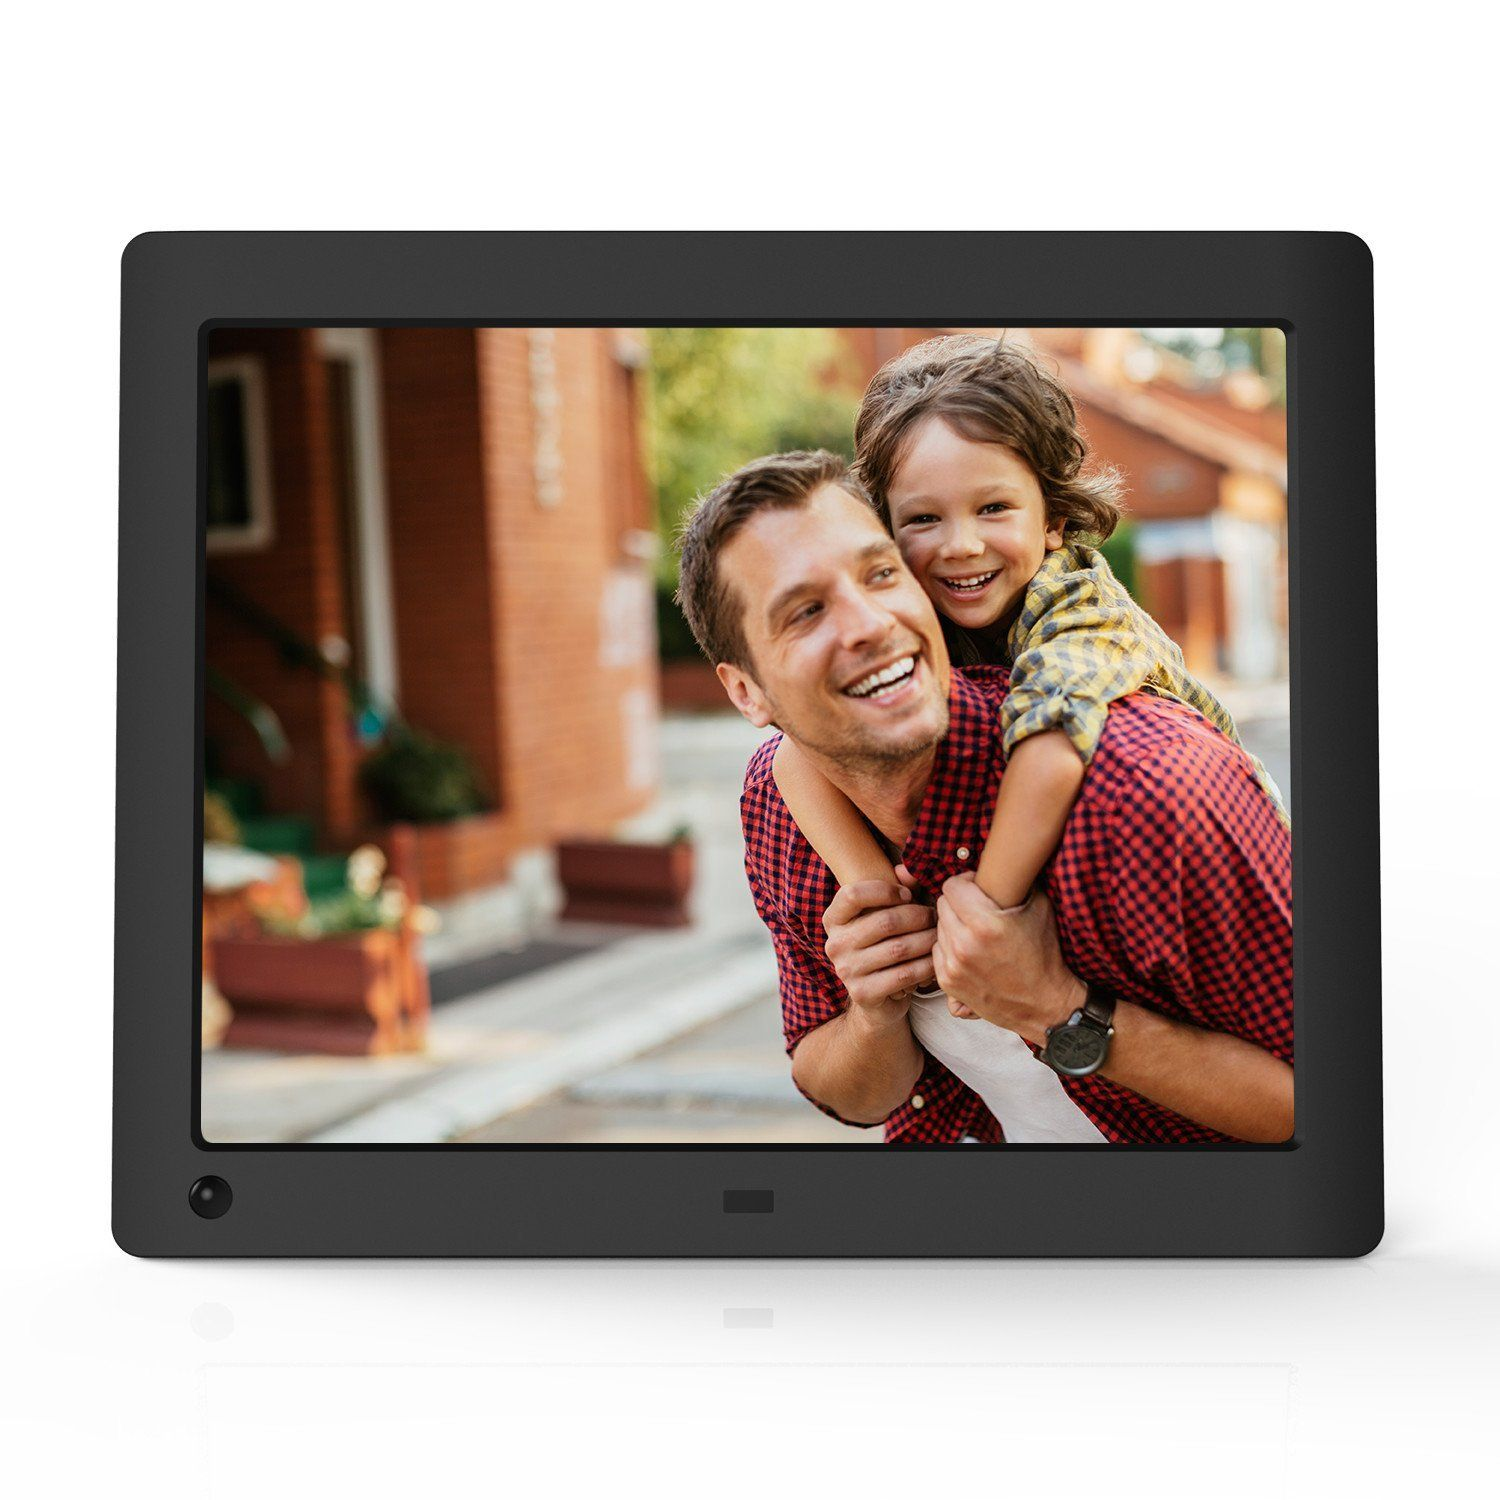 Display Photo And Video Memories With Ease Nix Advance 8 Inch Hi Res Digital Photo Frame Best Digital Photo Frame Digital Photo Frame Digital Picture Frame